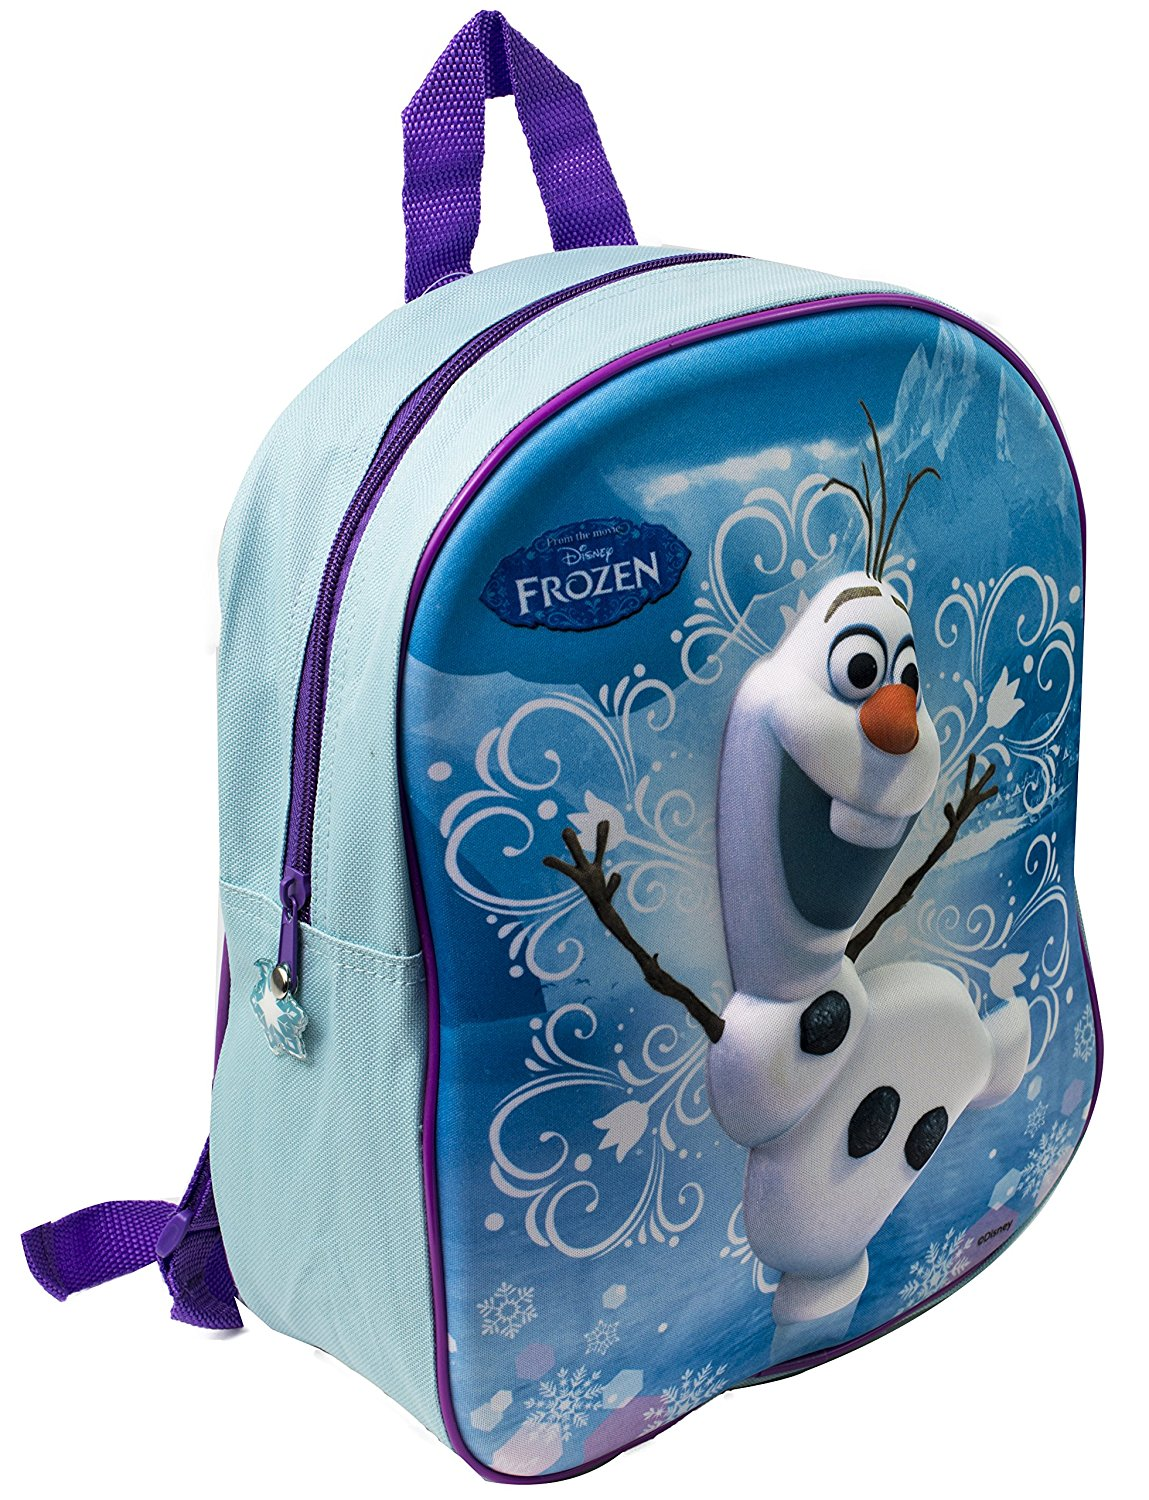 4d18768f158 Get Quotations · OFFICIAL DISNEY FROZEN 3D OLAF SCHOOL BACKPACK